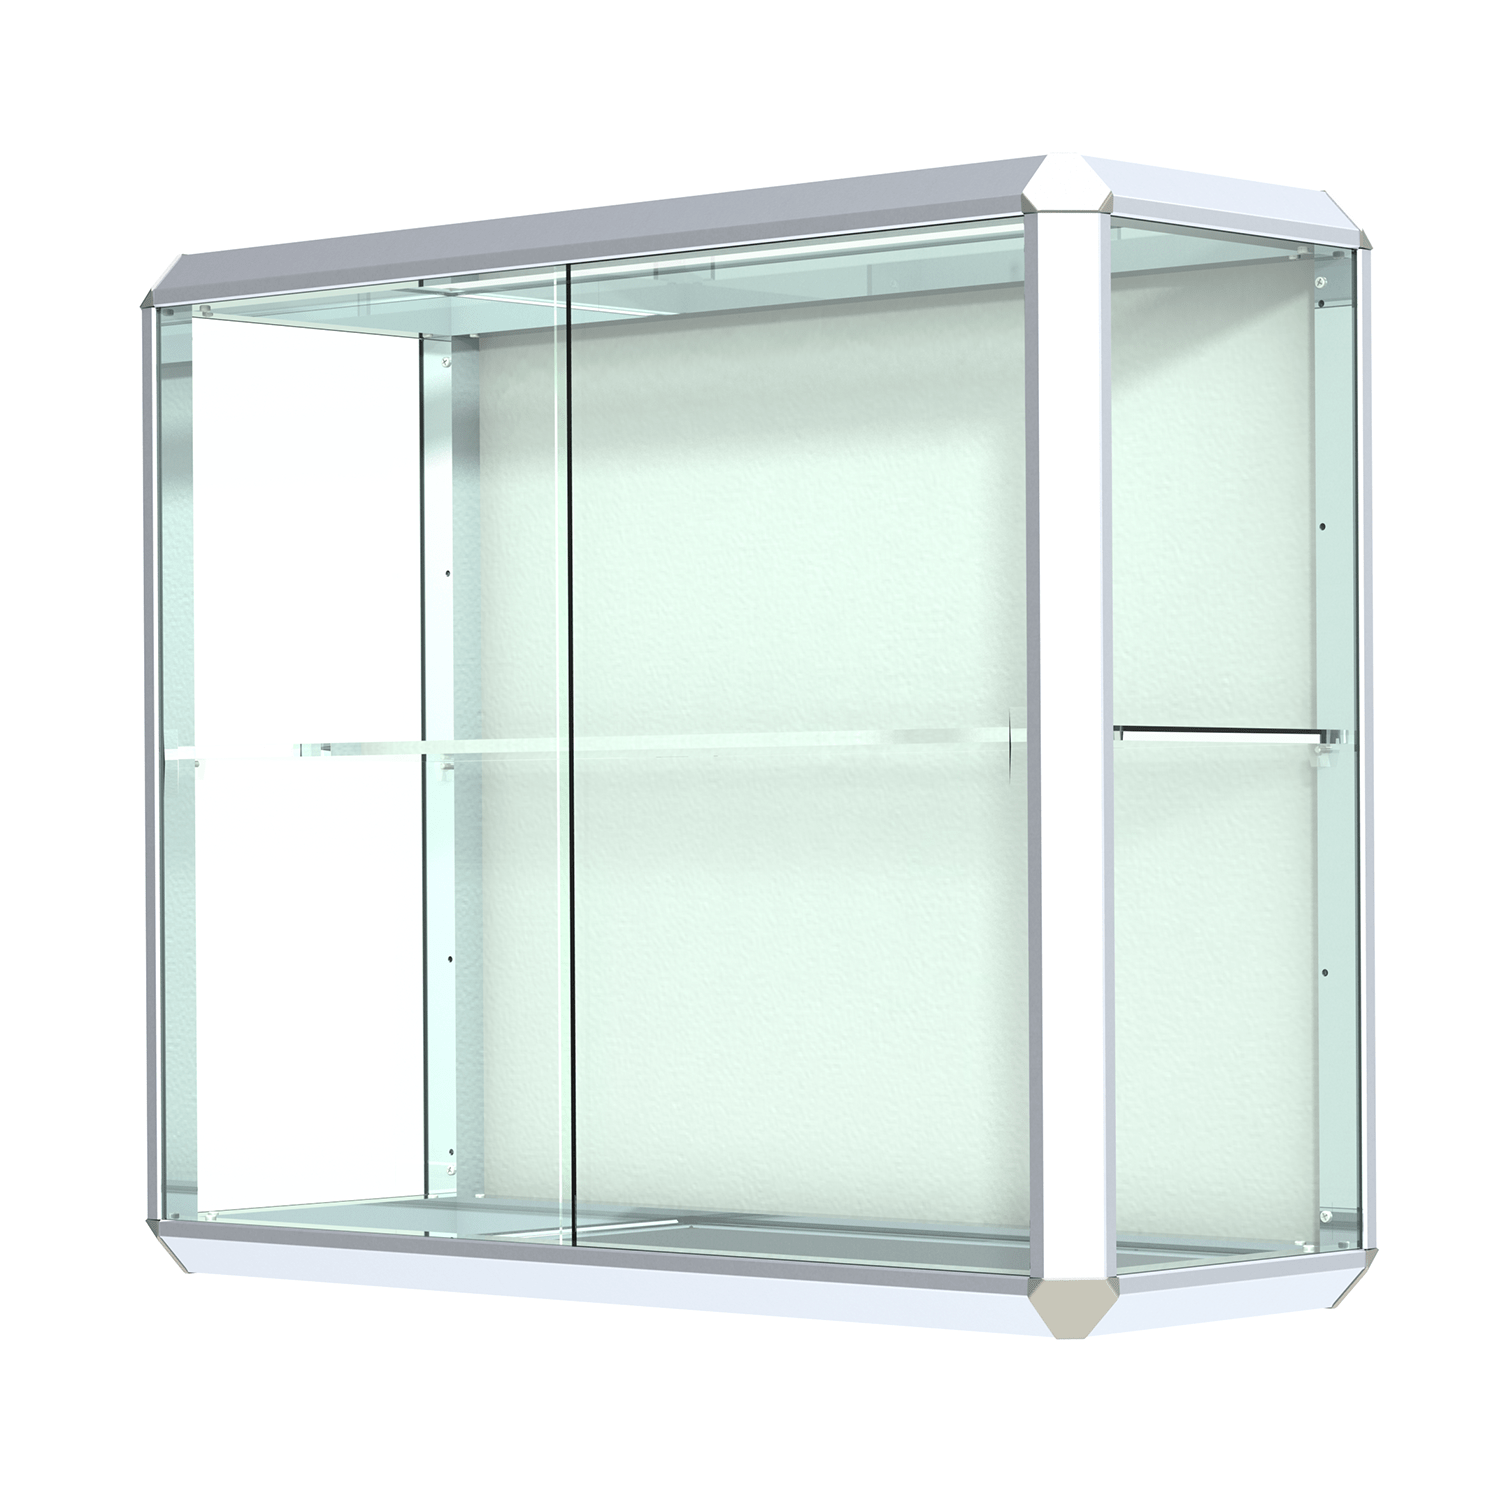 Wall Mounted Display Case Chrome Finished Aluminum Frame Wall Mount Display Case With Shelf